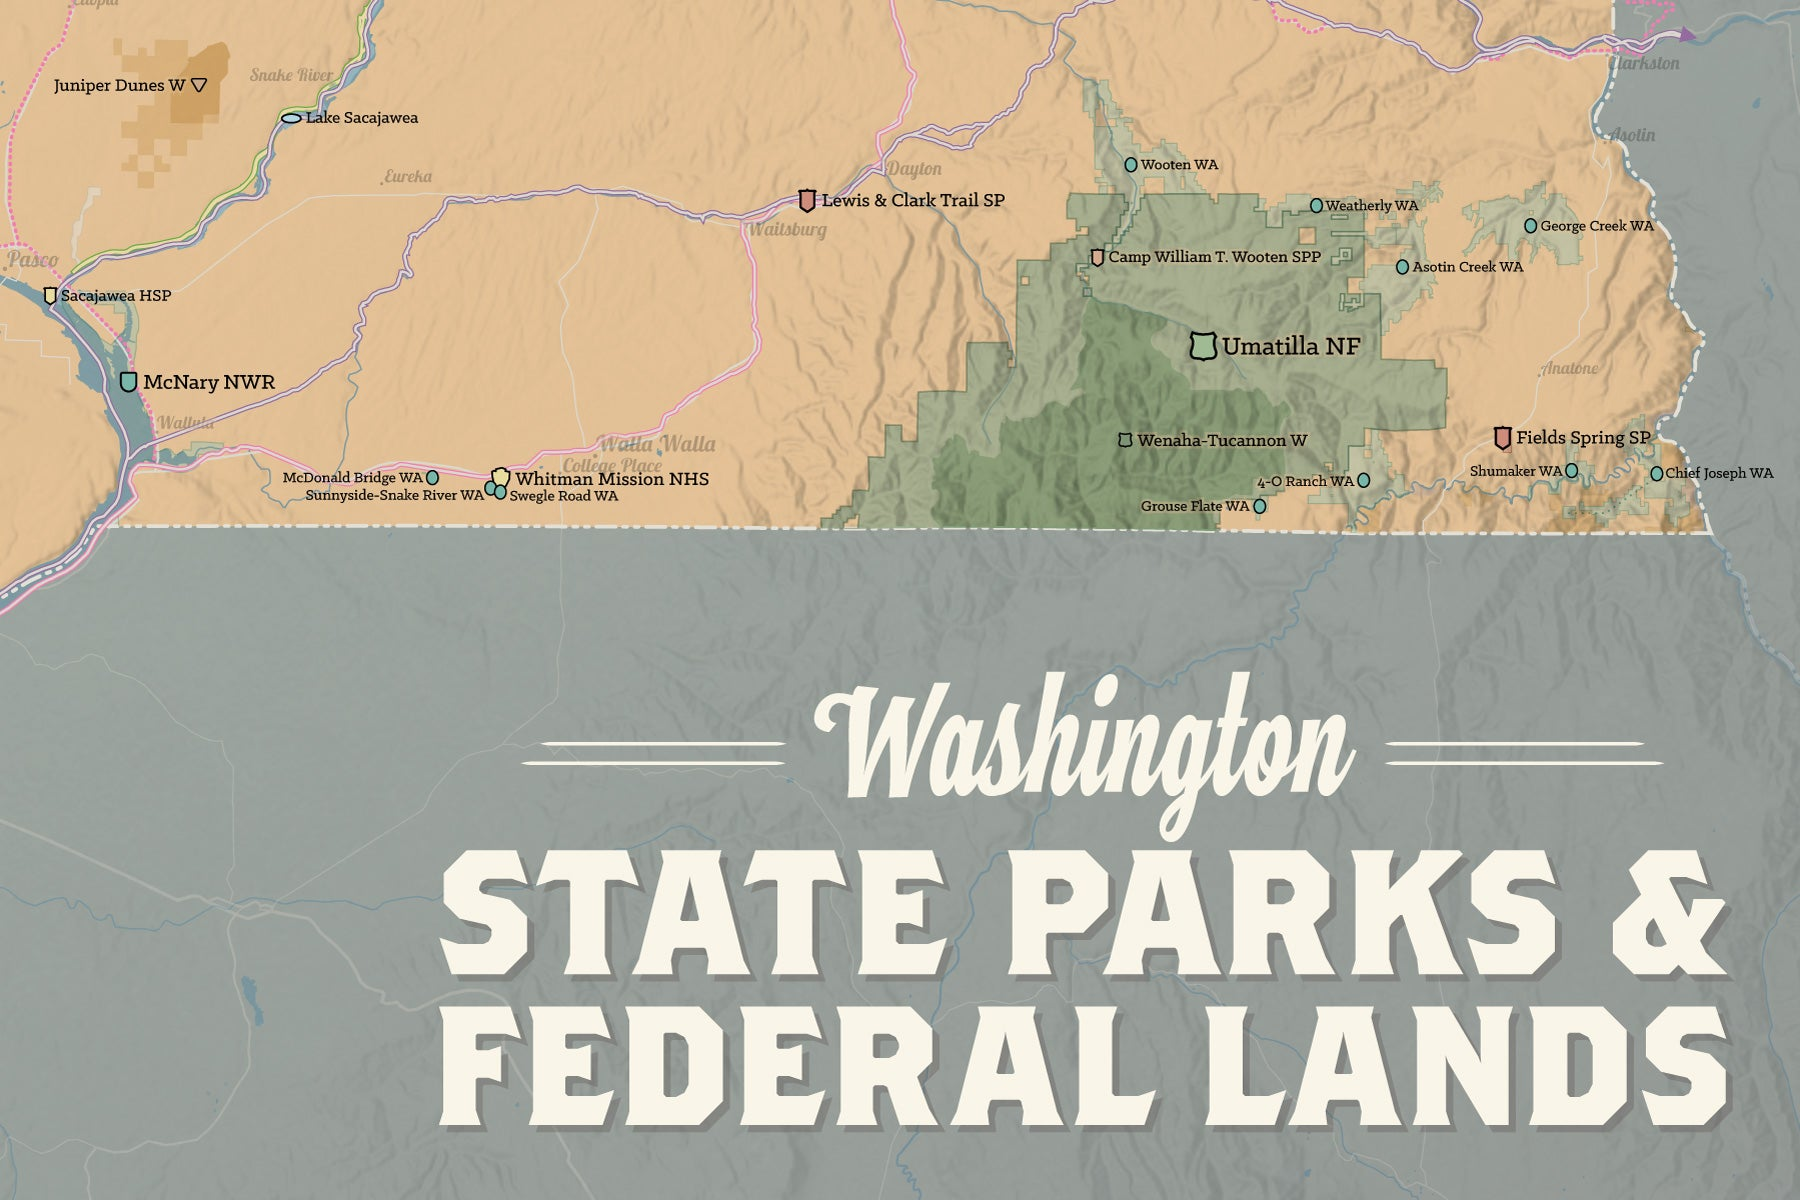 Washington State Parks Federal Lands Map 24x36 Poster Best Maps Ever